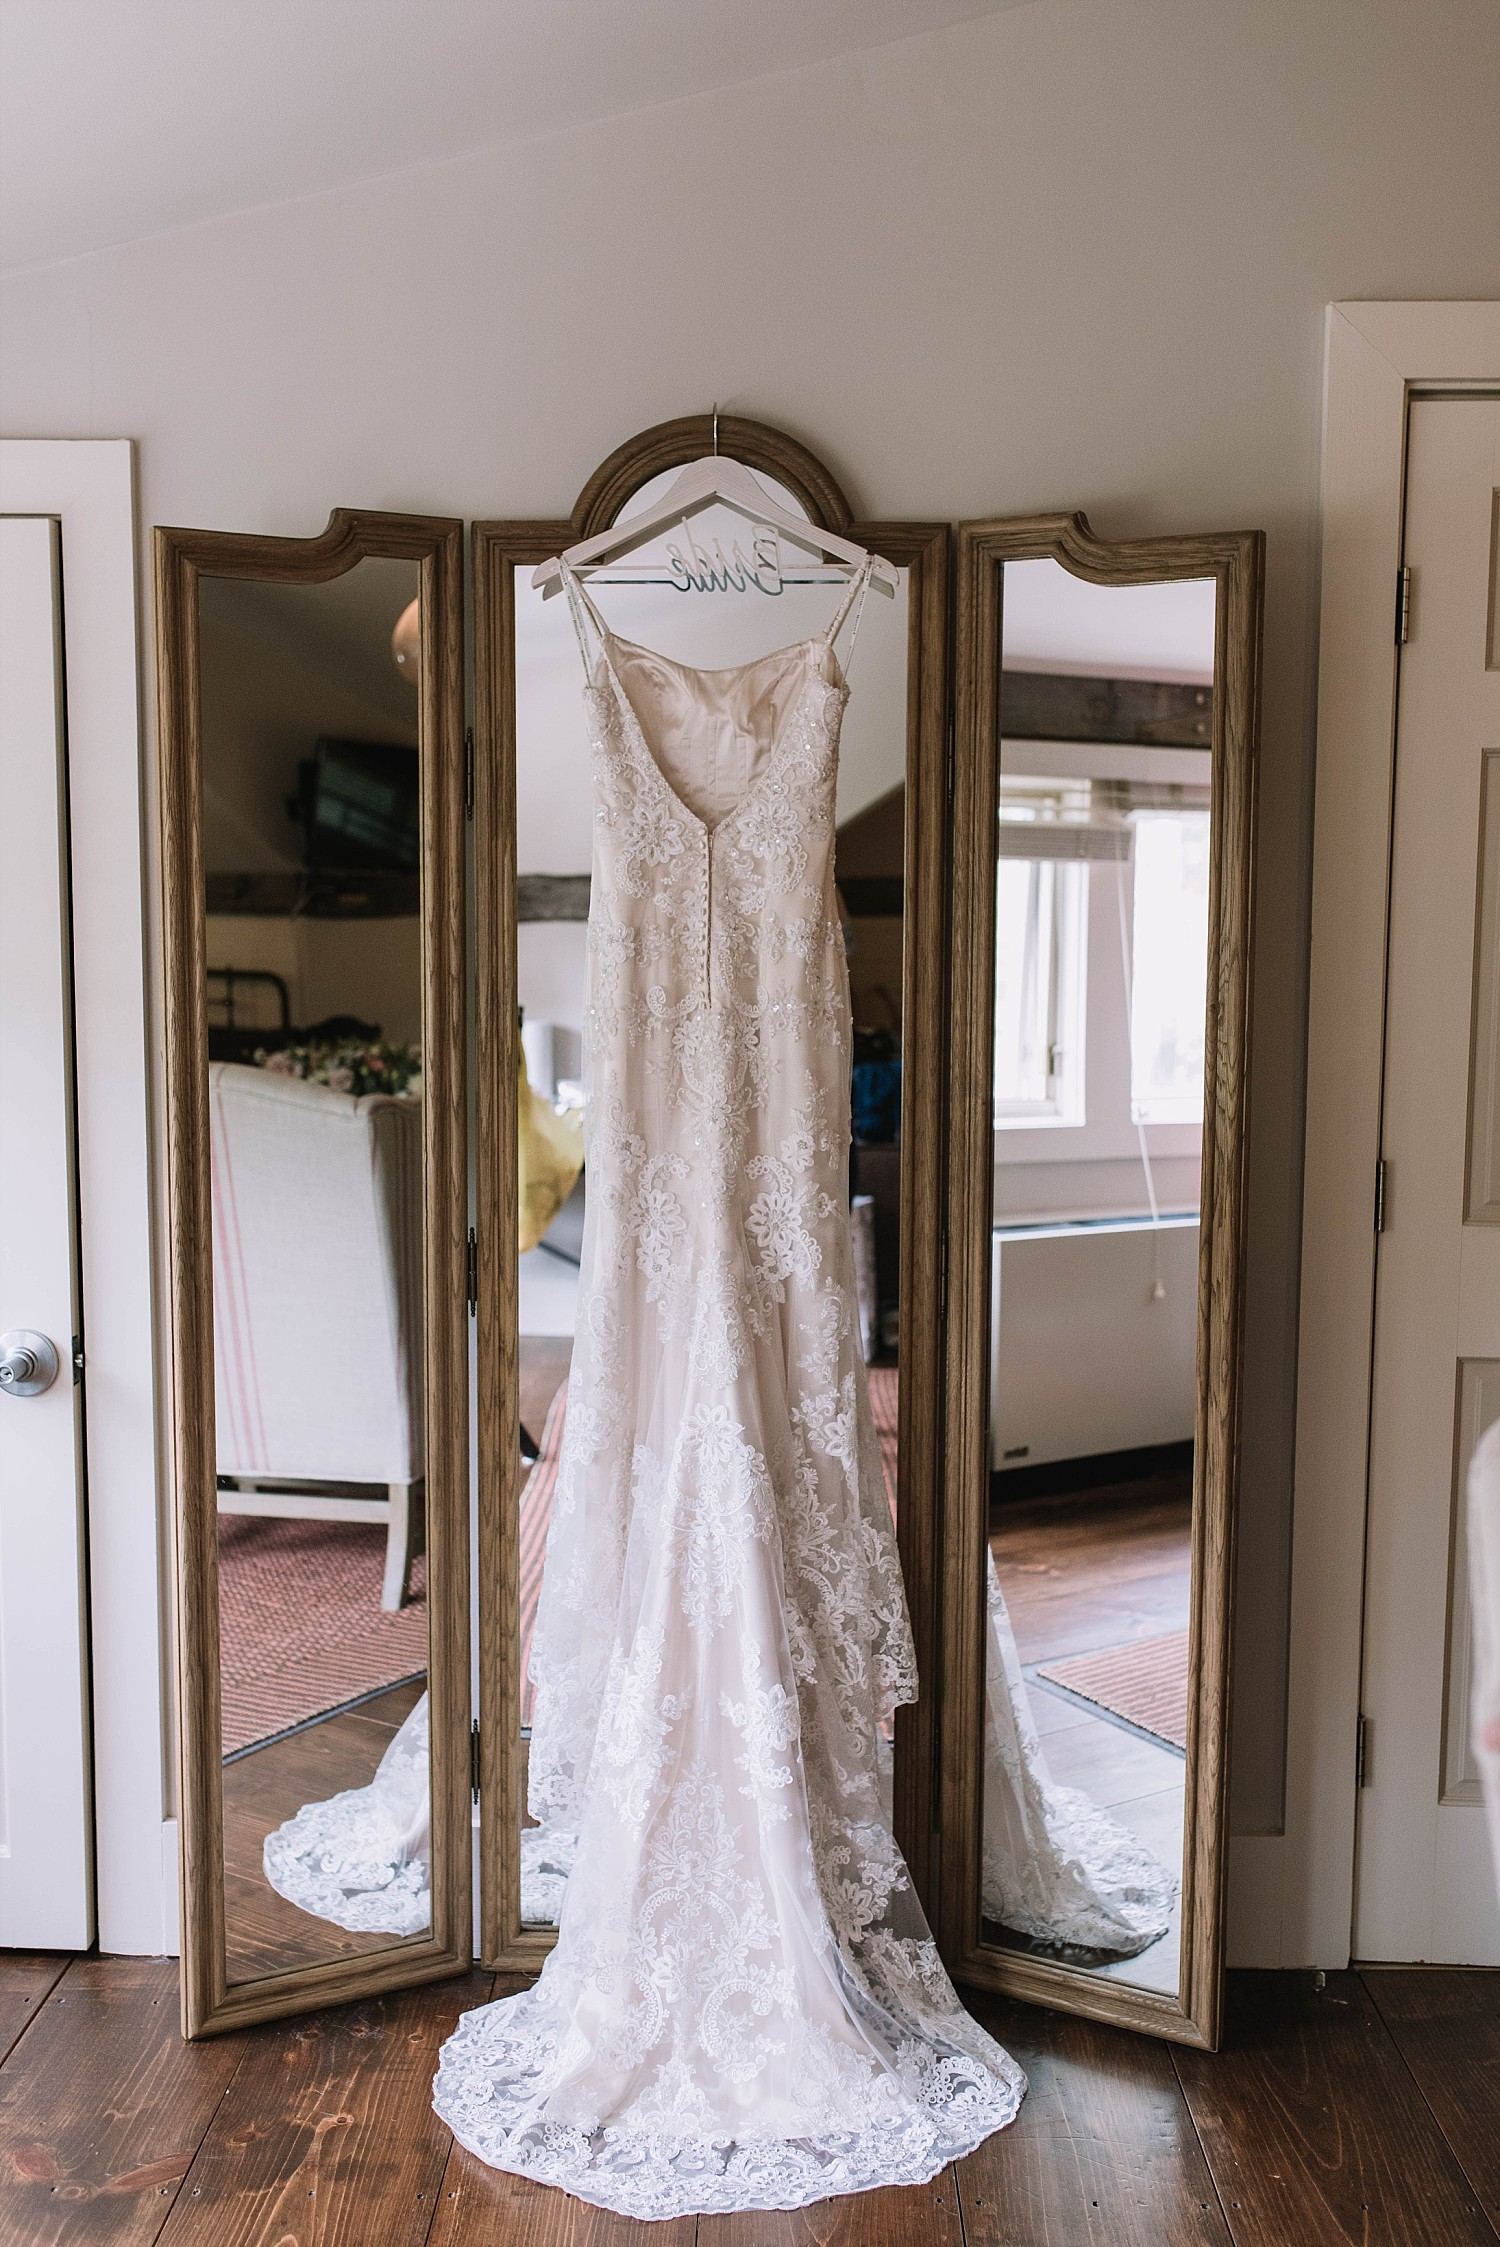 Three Chimney's Inn Wedding